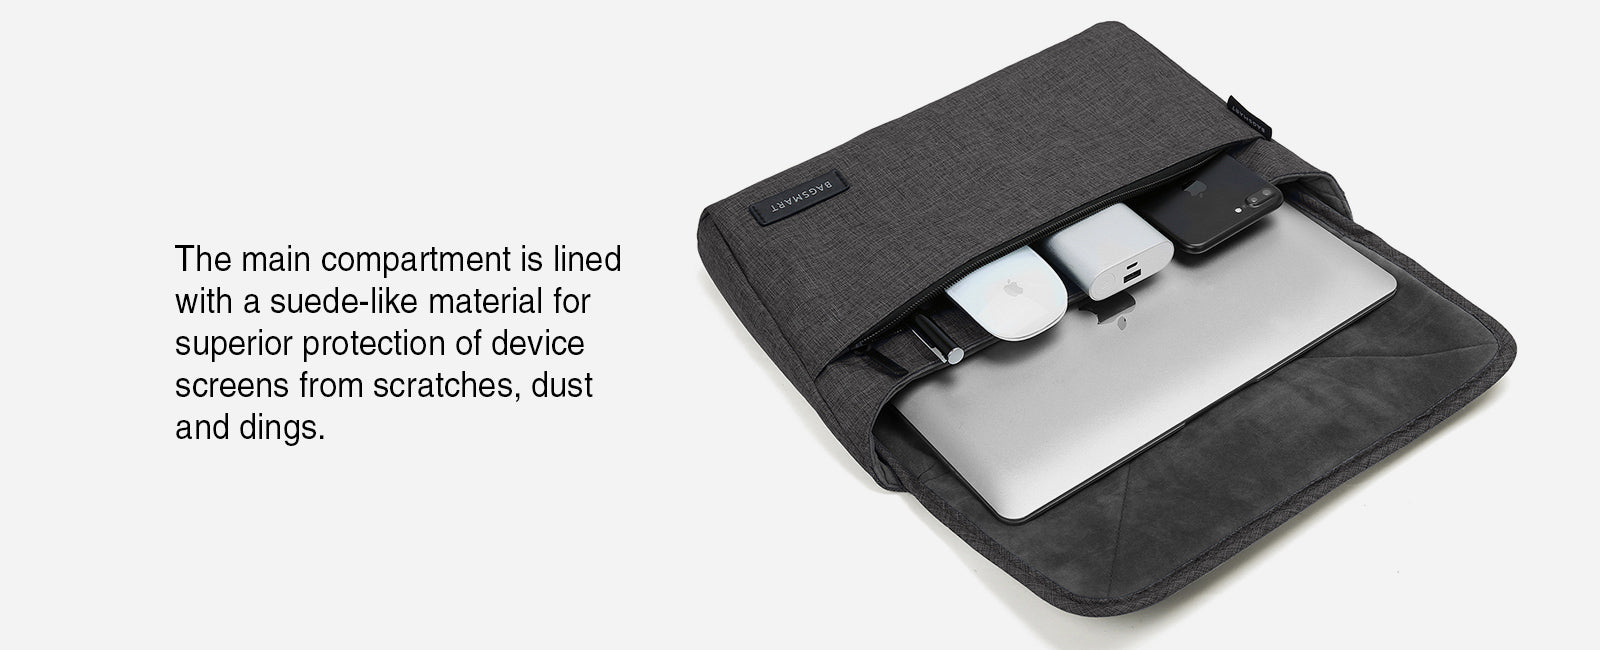 Portable Slim Laptop Sleeve Briefcase Travel Electronics Case & Laptop Bag for 13'' MacBook pro, MacBook Air, Kindle